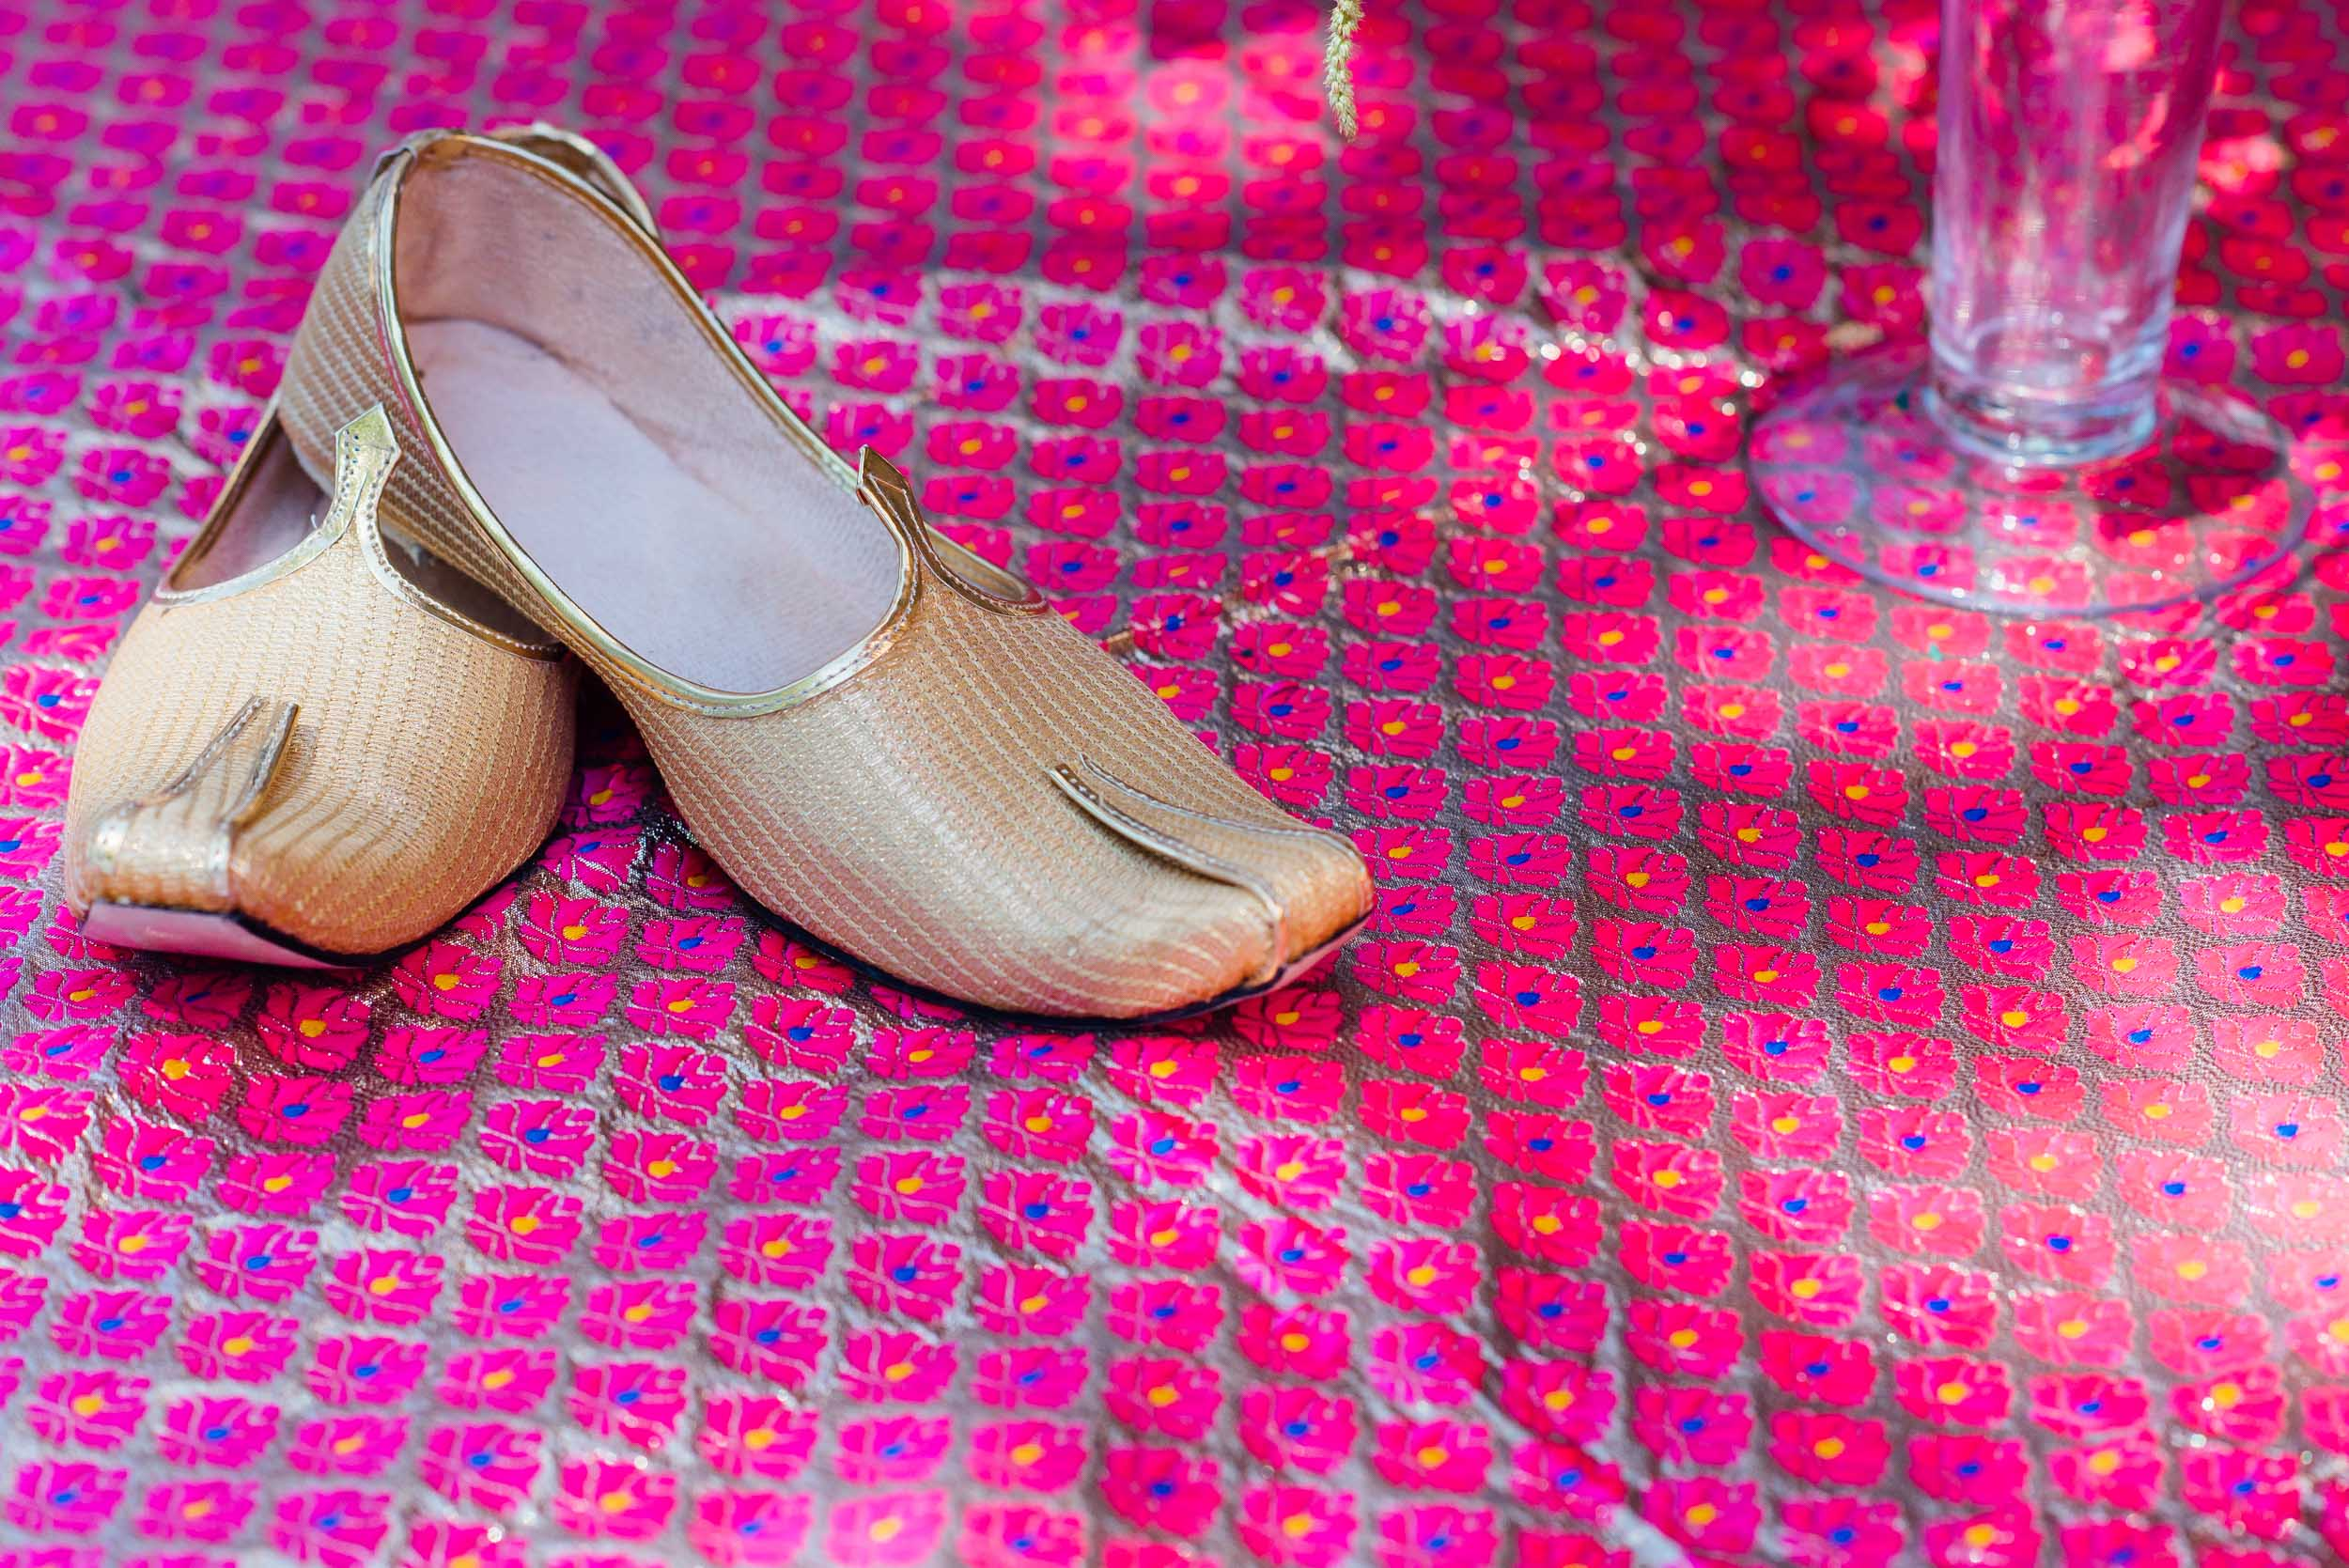 Grooms shoes Bay area Indian wedding photographer